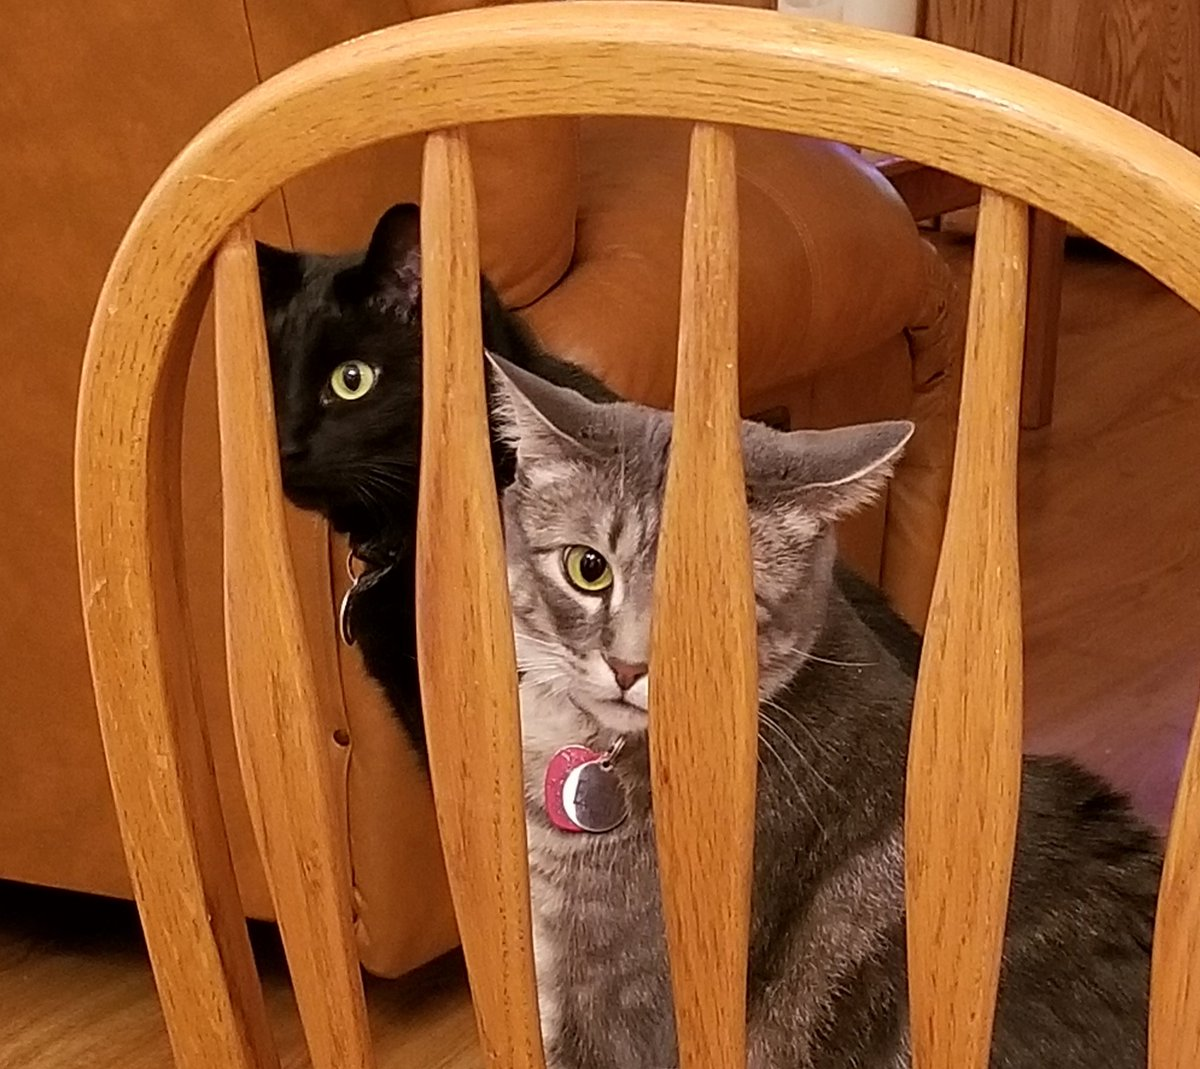 Mom! Free us! We need to eat your food! Two cats in food jail today! 😾😾 #Caturday #CatsOfTwitter